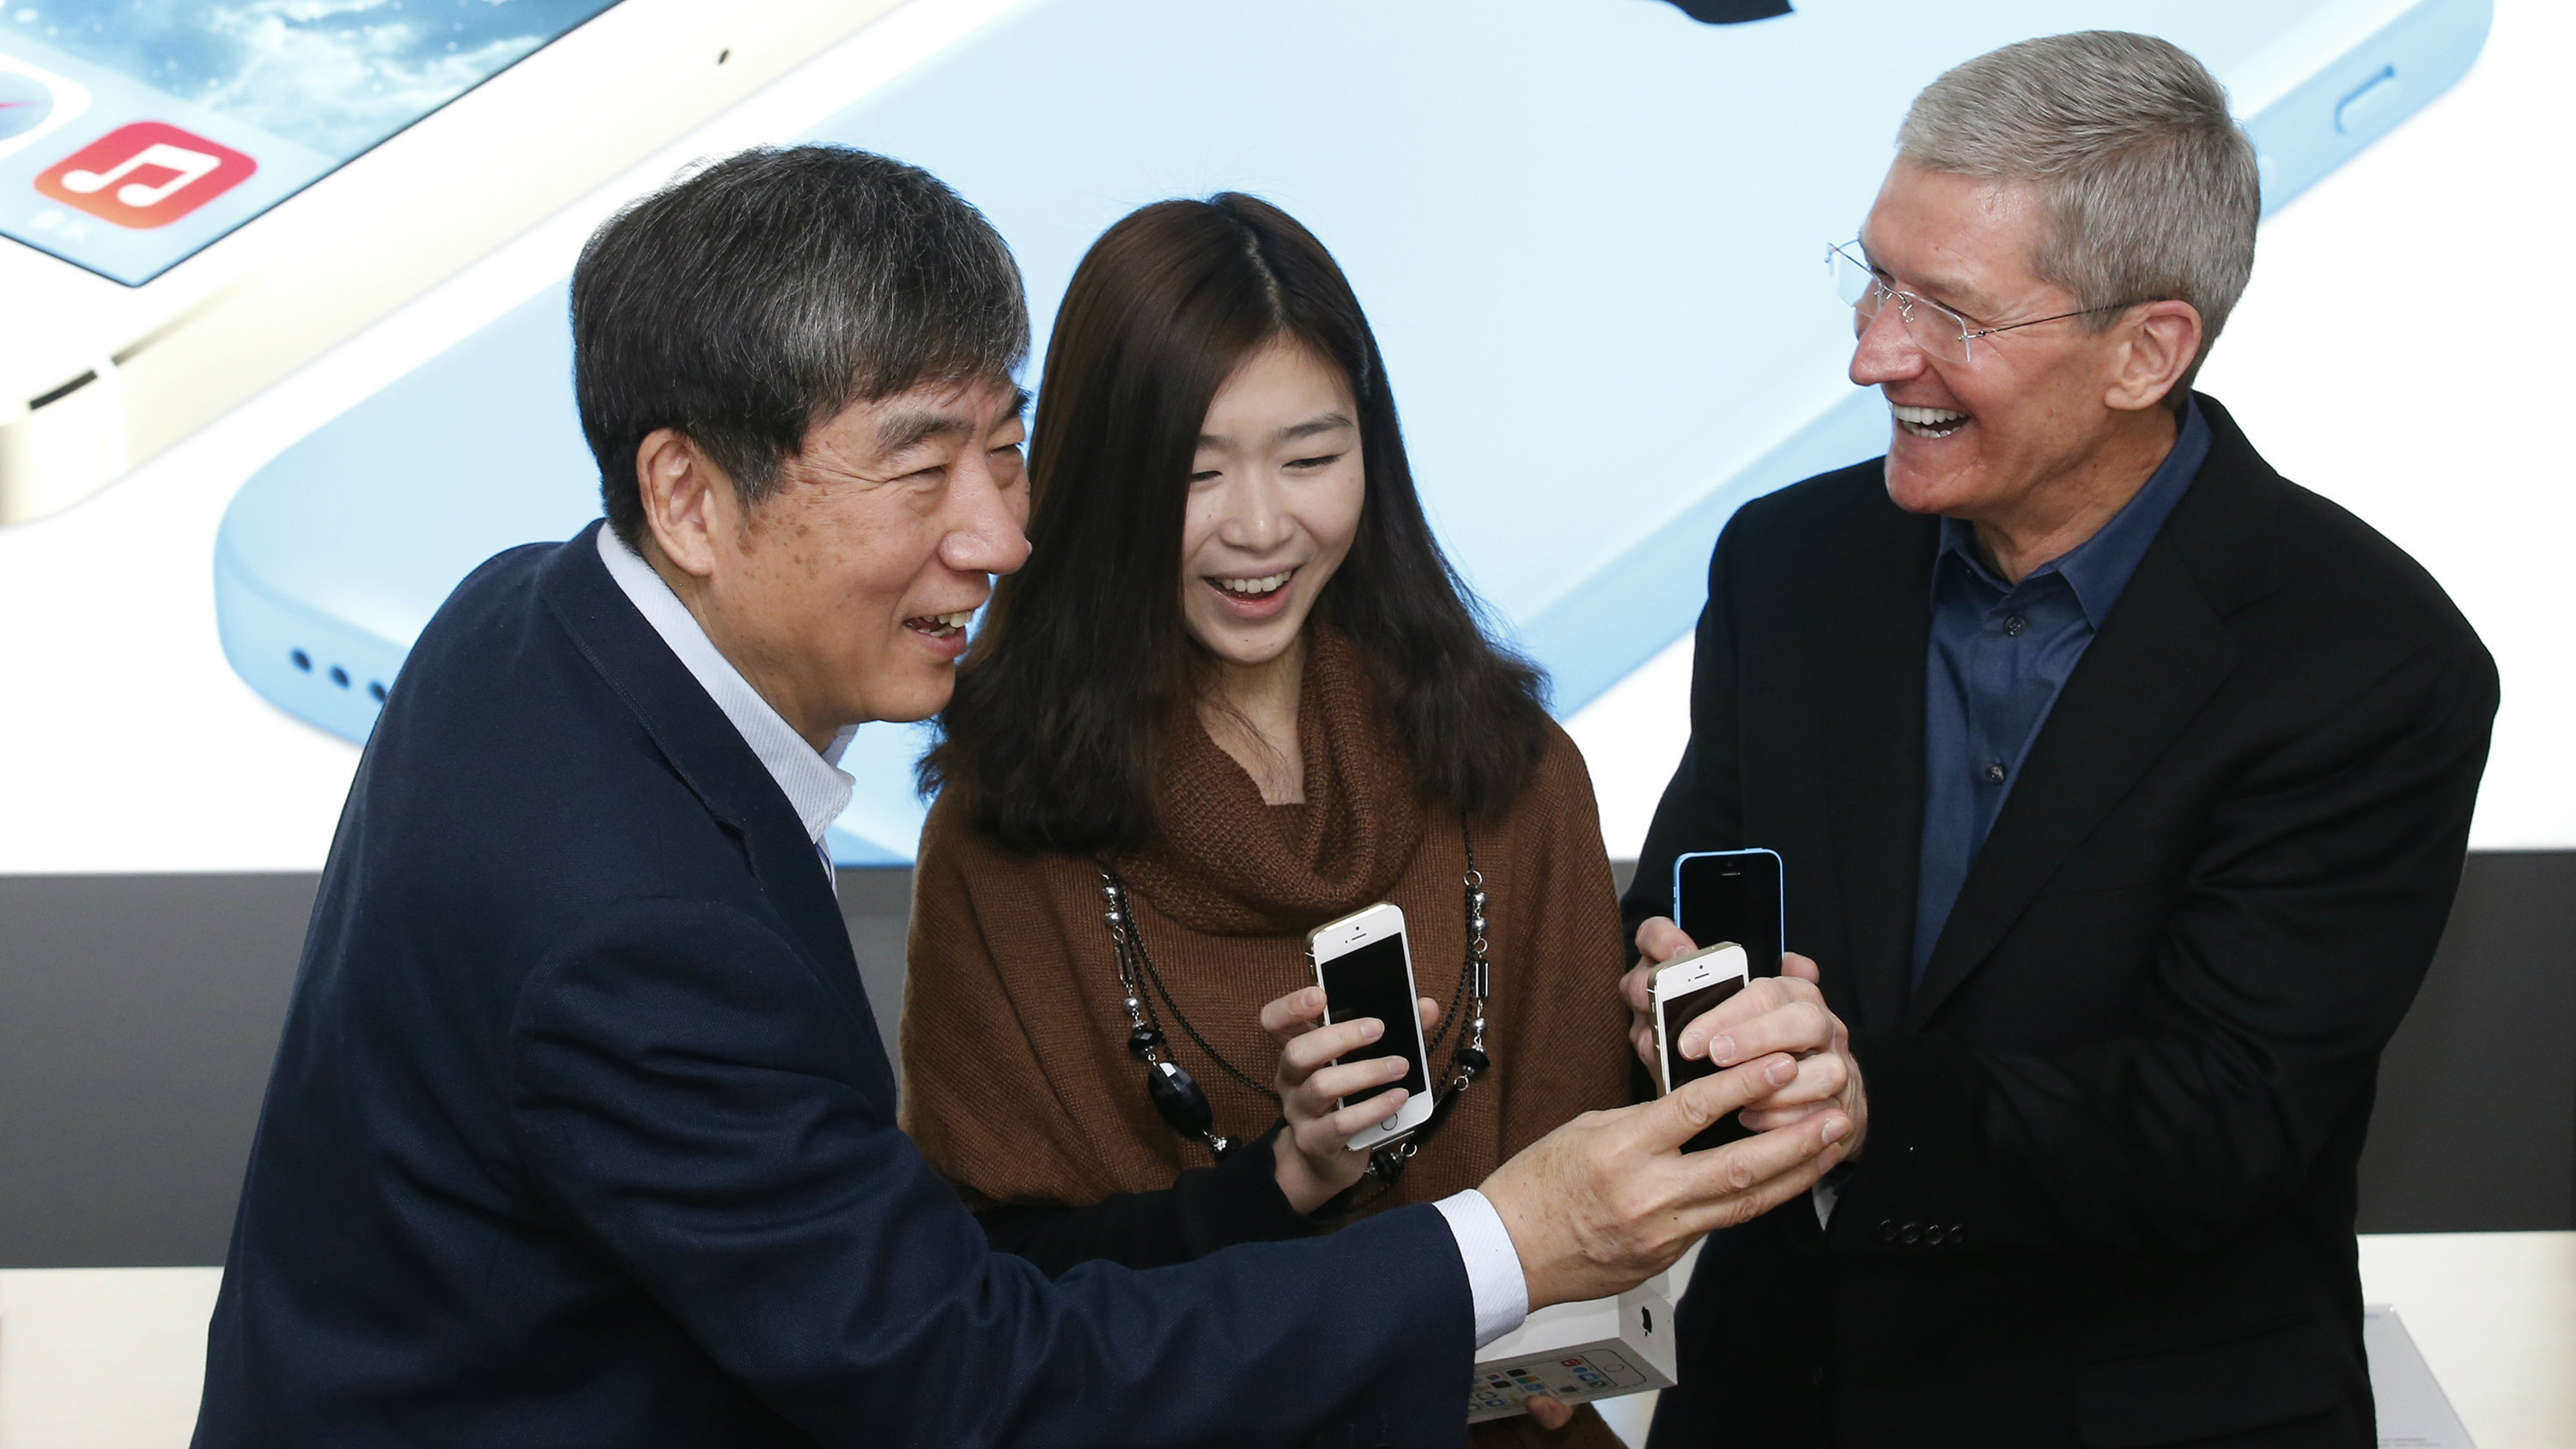 Tim Cook with an Apple customer and Xi Guohua, chairman of China Mobile, China's largest telco.